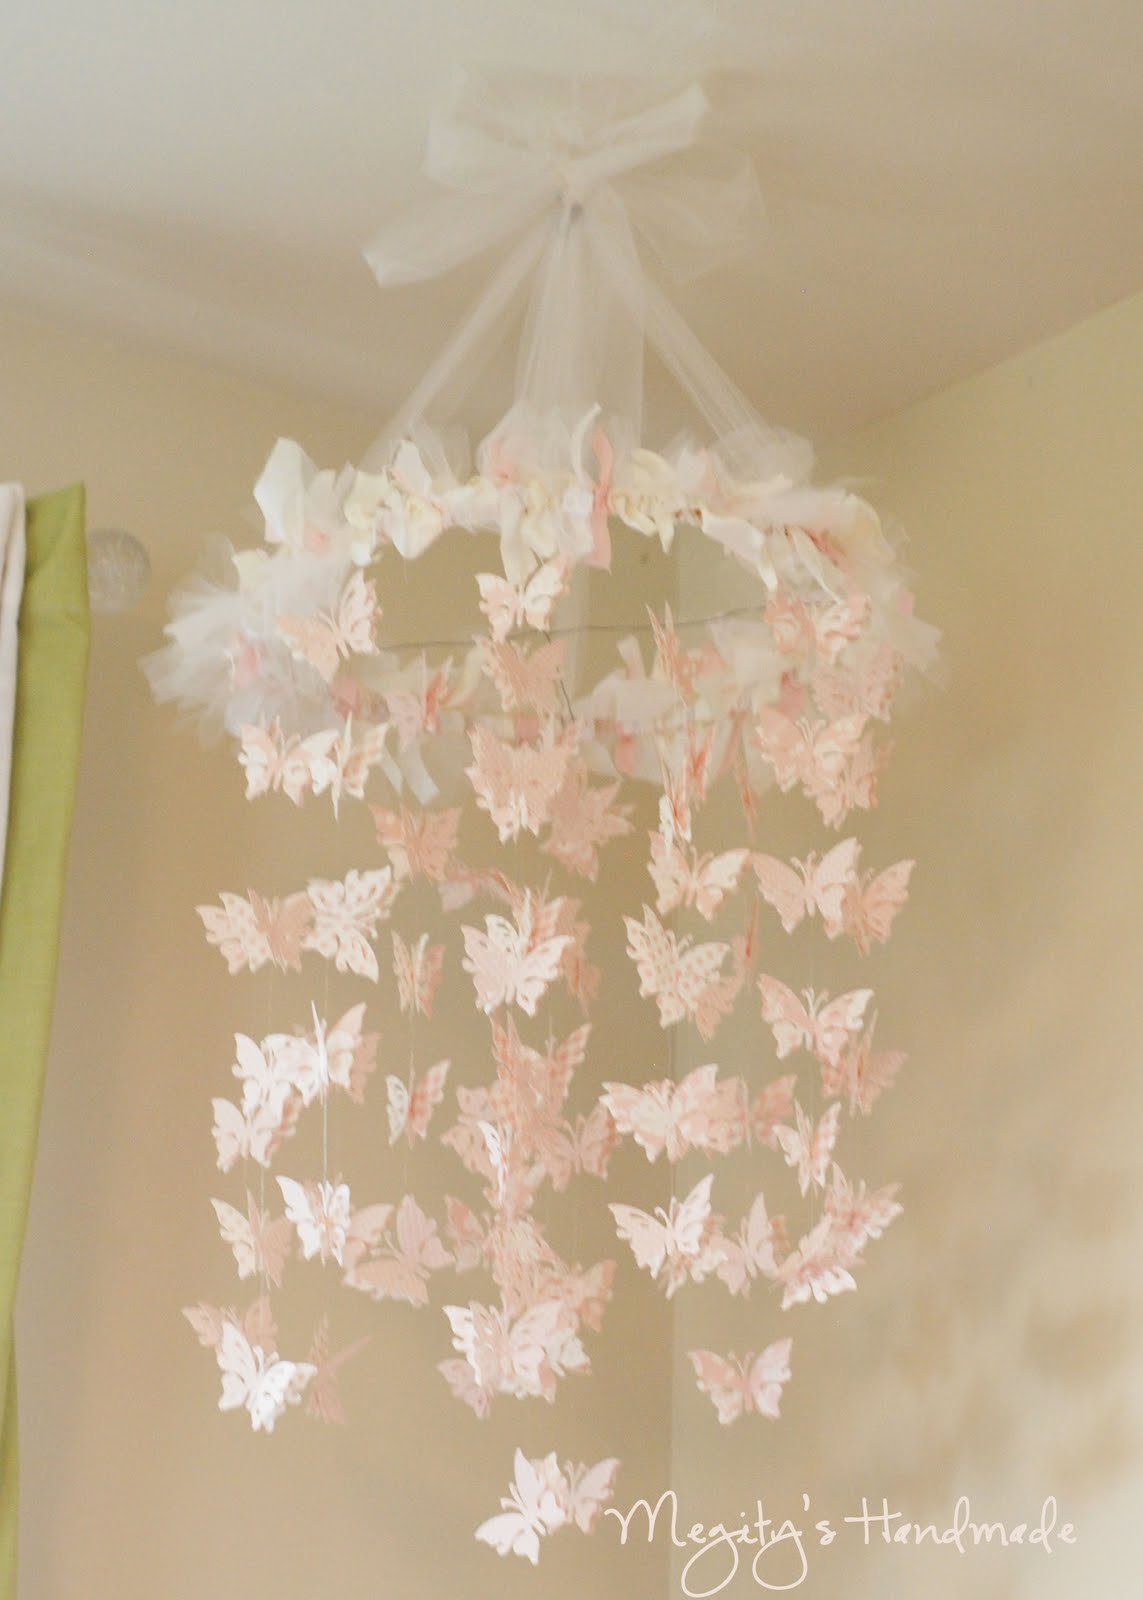 A butterfly chandelier megitys handmade oopsey daisy a butterfly chandelier megitys handmade mozeypictures Images